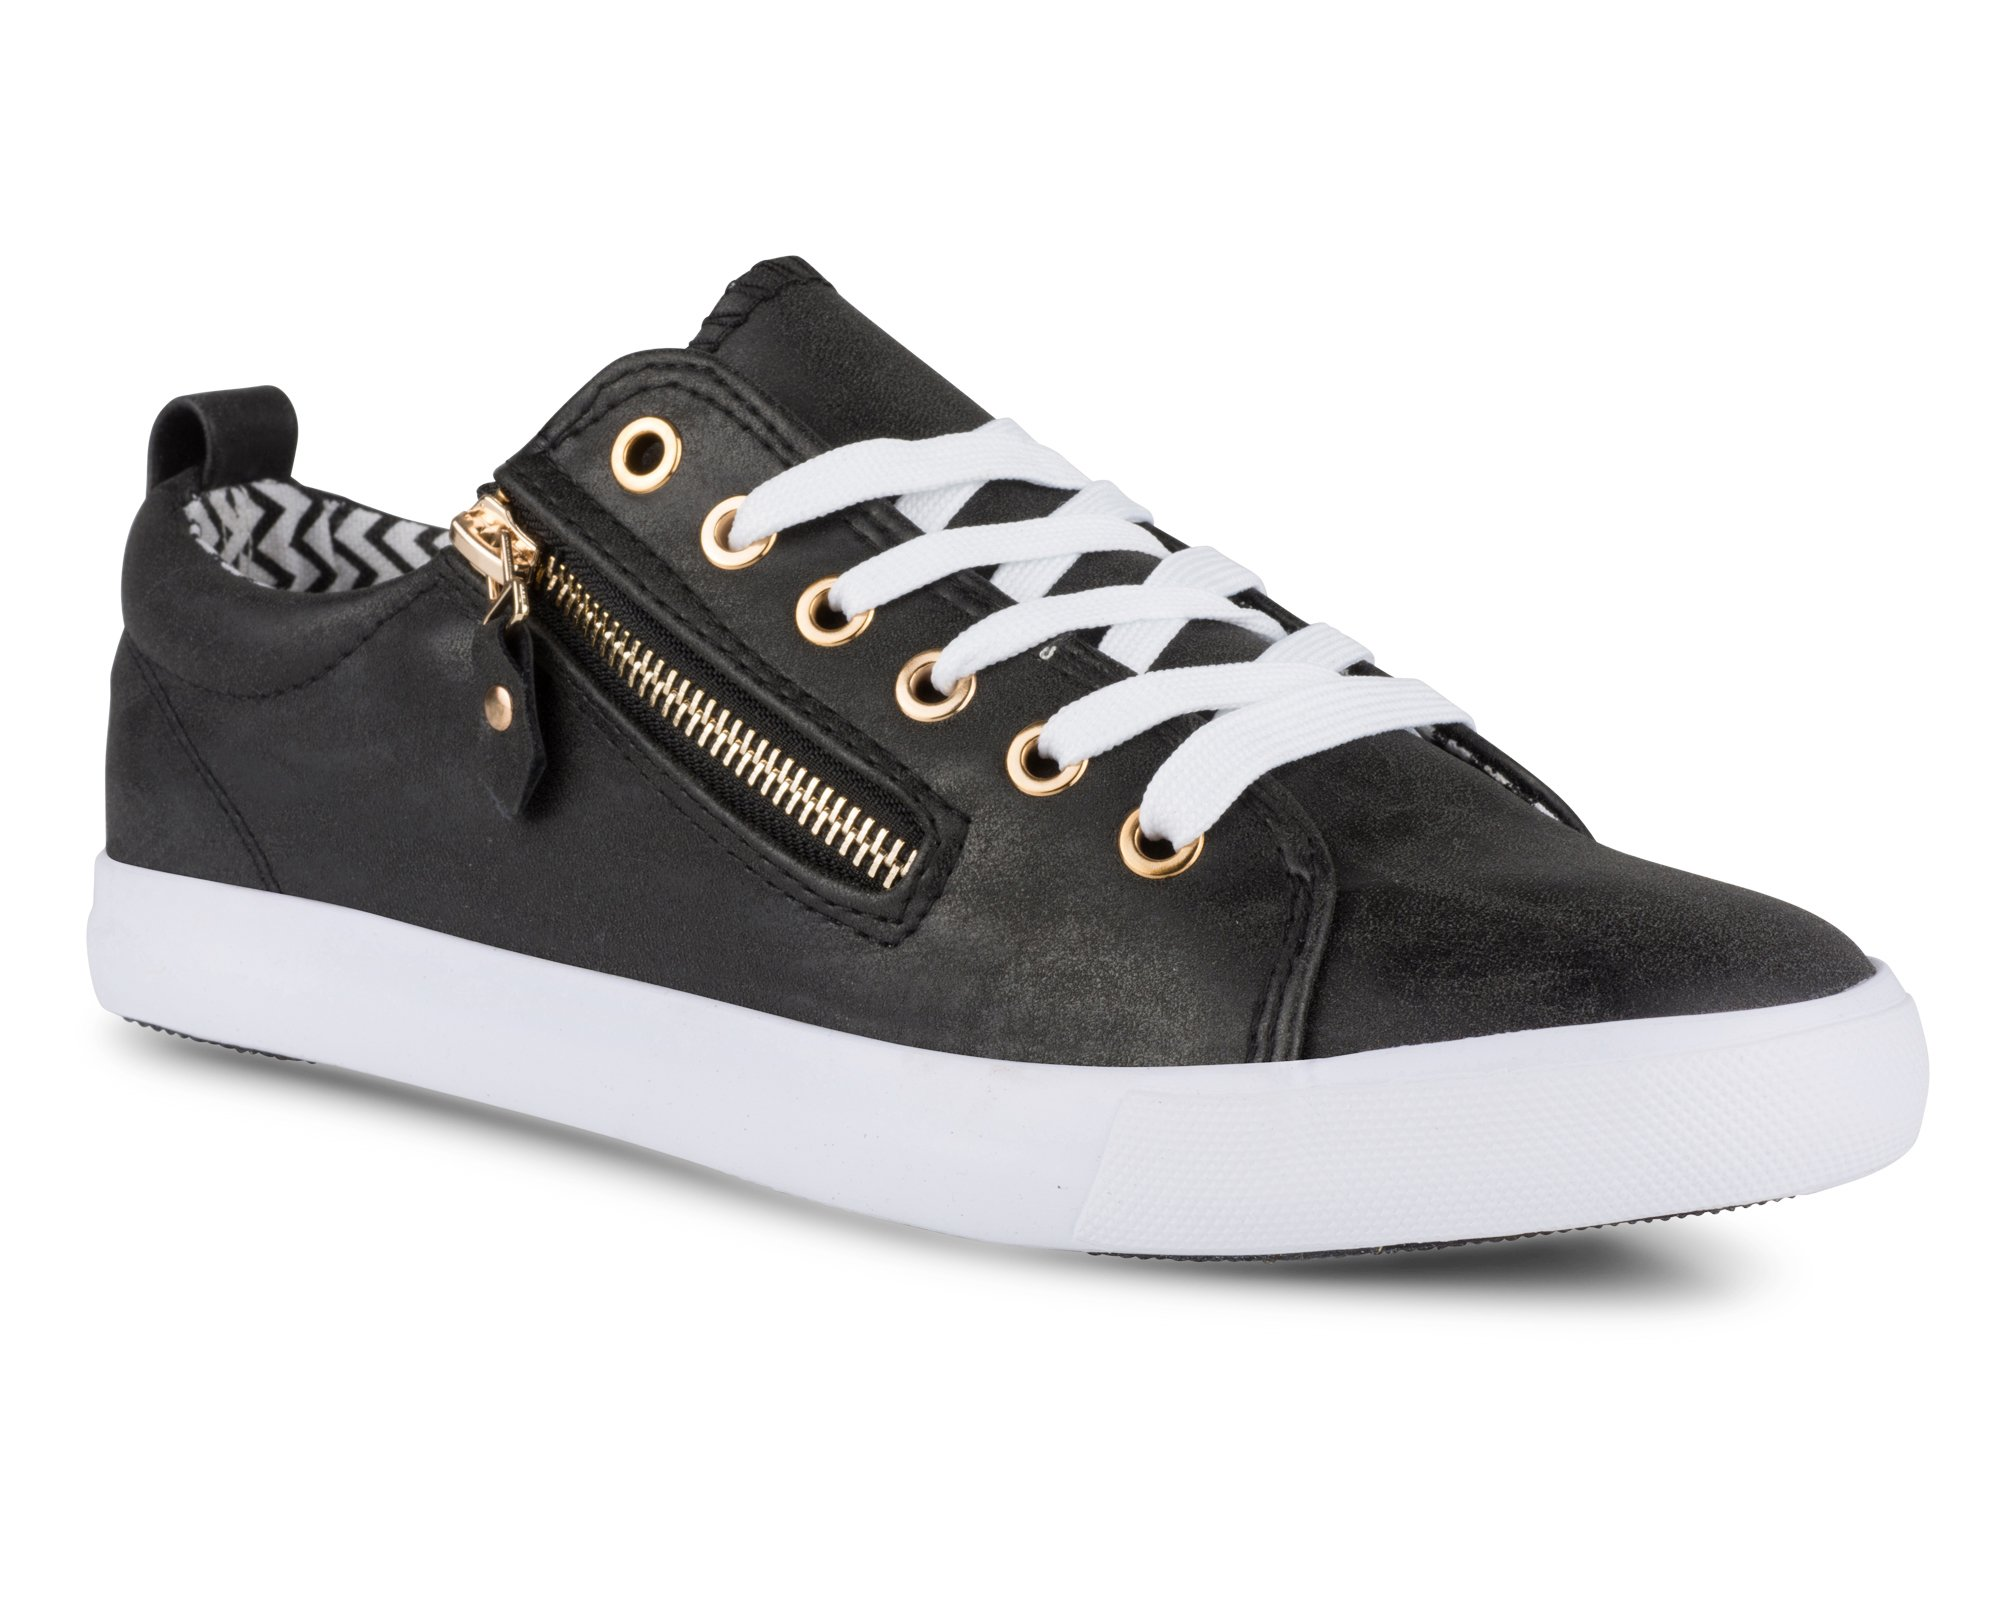 Twisted Women's Alley Faux Leather Fashion Sneaker with Decorative Zipper - ALLEY14 Black, Size 7